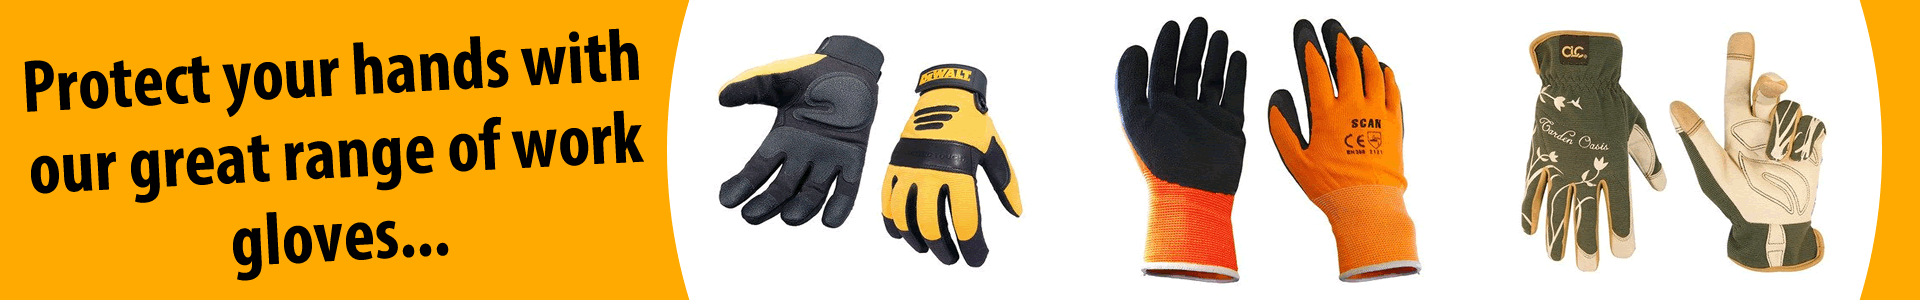 Protect your hands with our great range of work gloves...